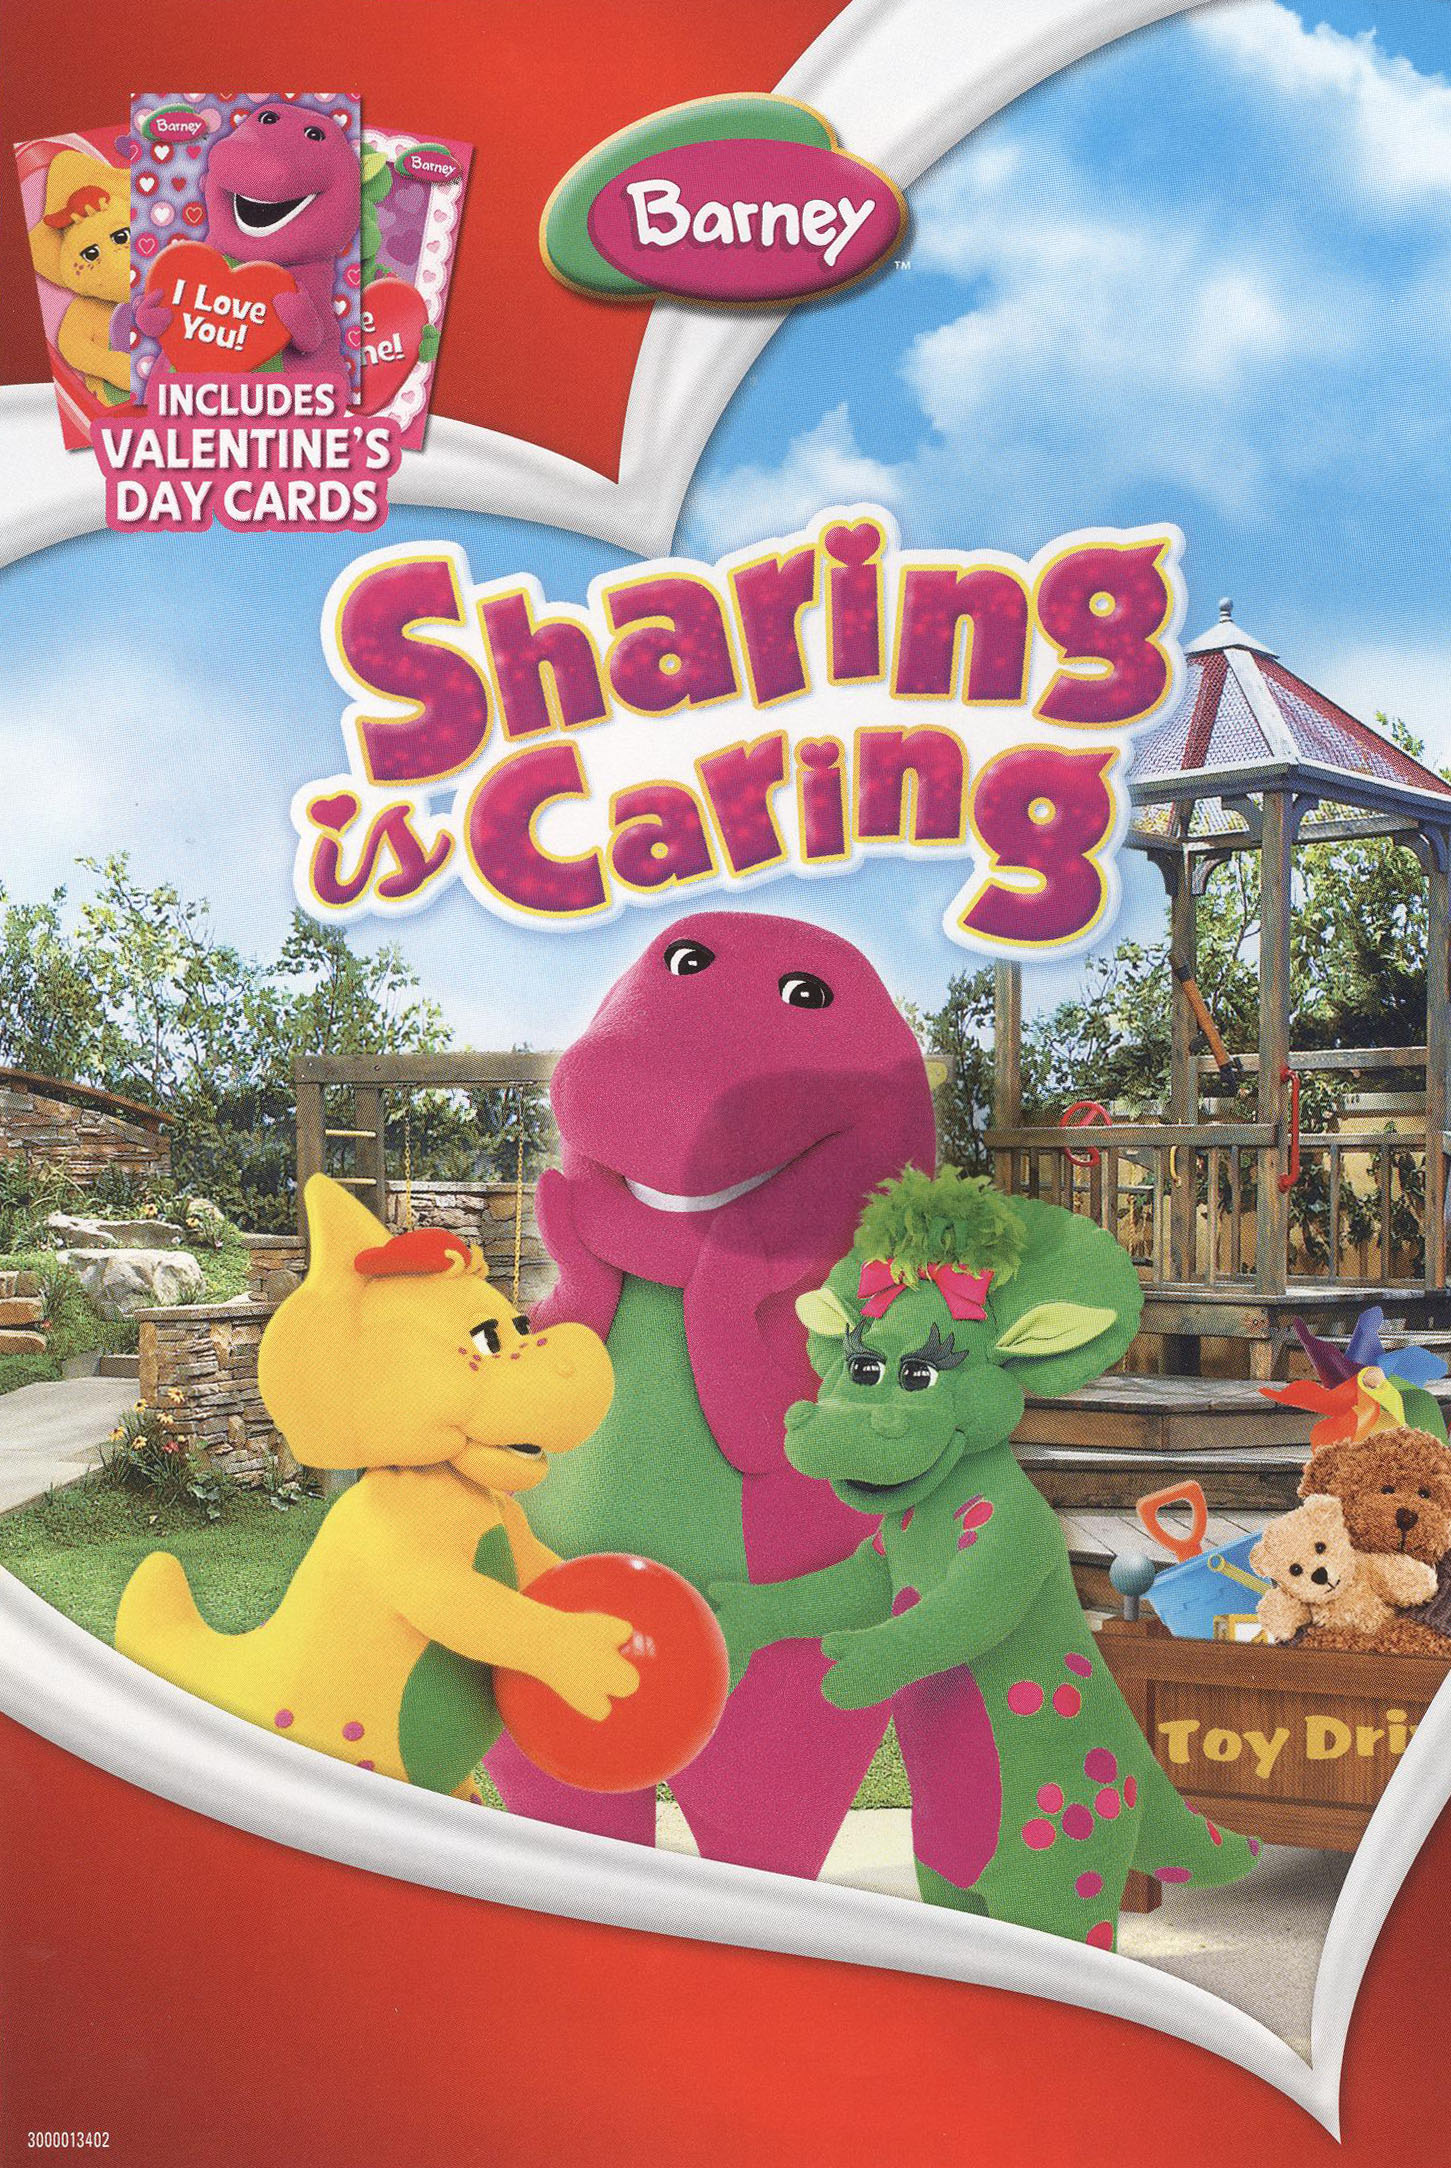 Barney: Sharing Is Caring!